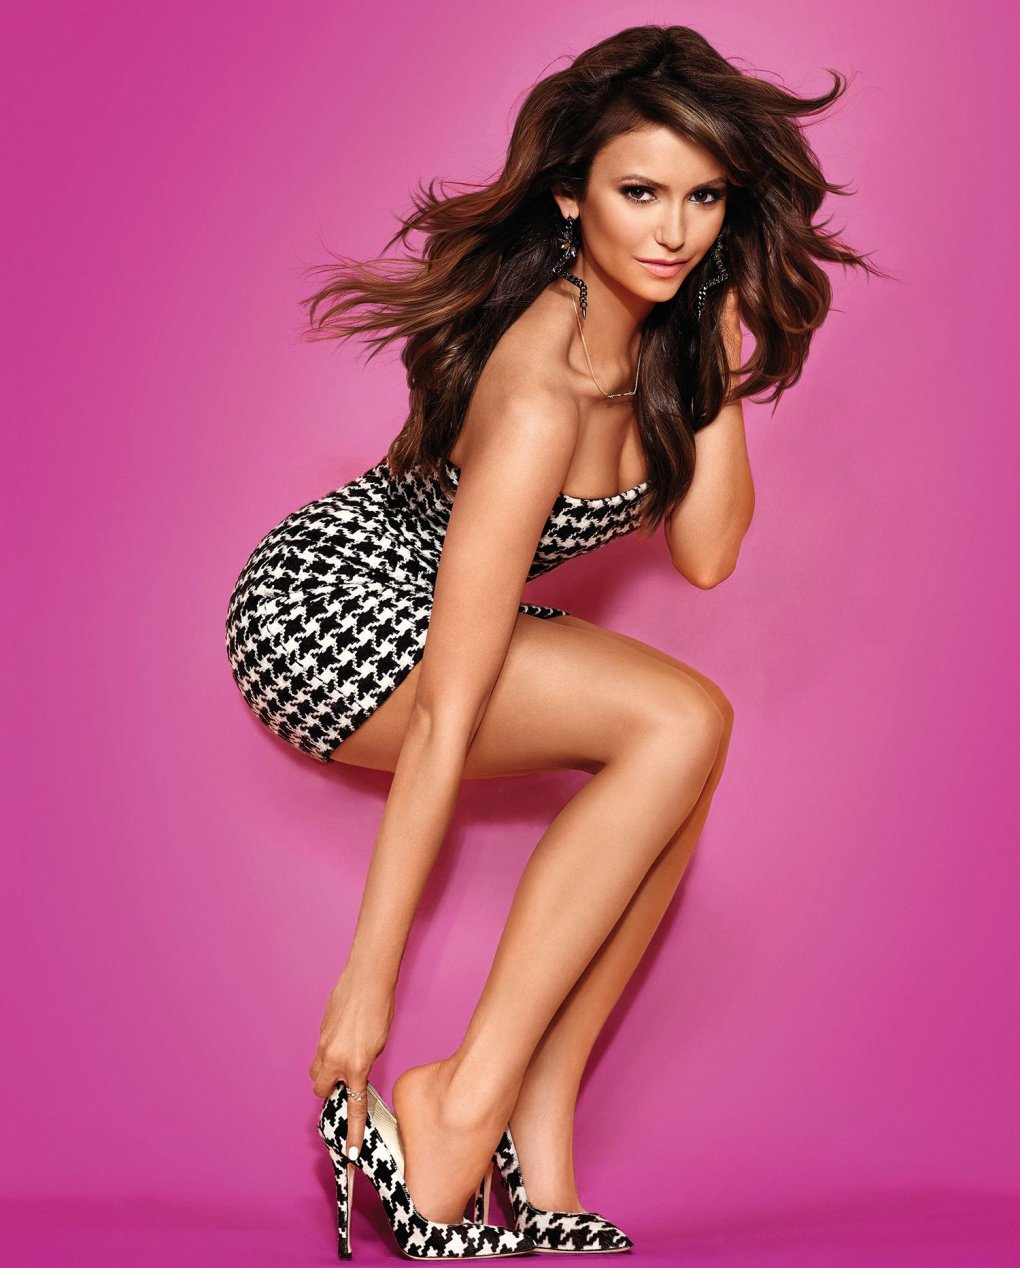 Nina Dobrev Wallpaper: 41 Hot Pictures Of Nina Dobrev